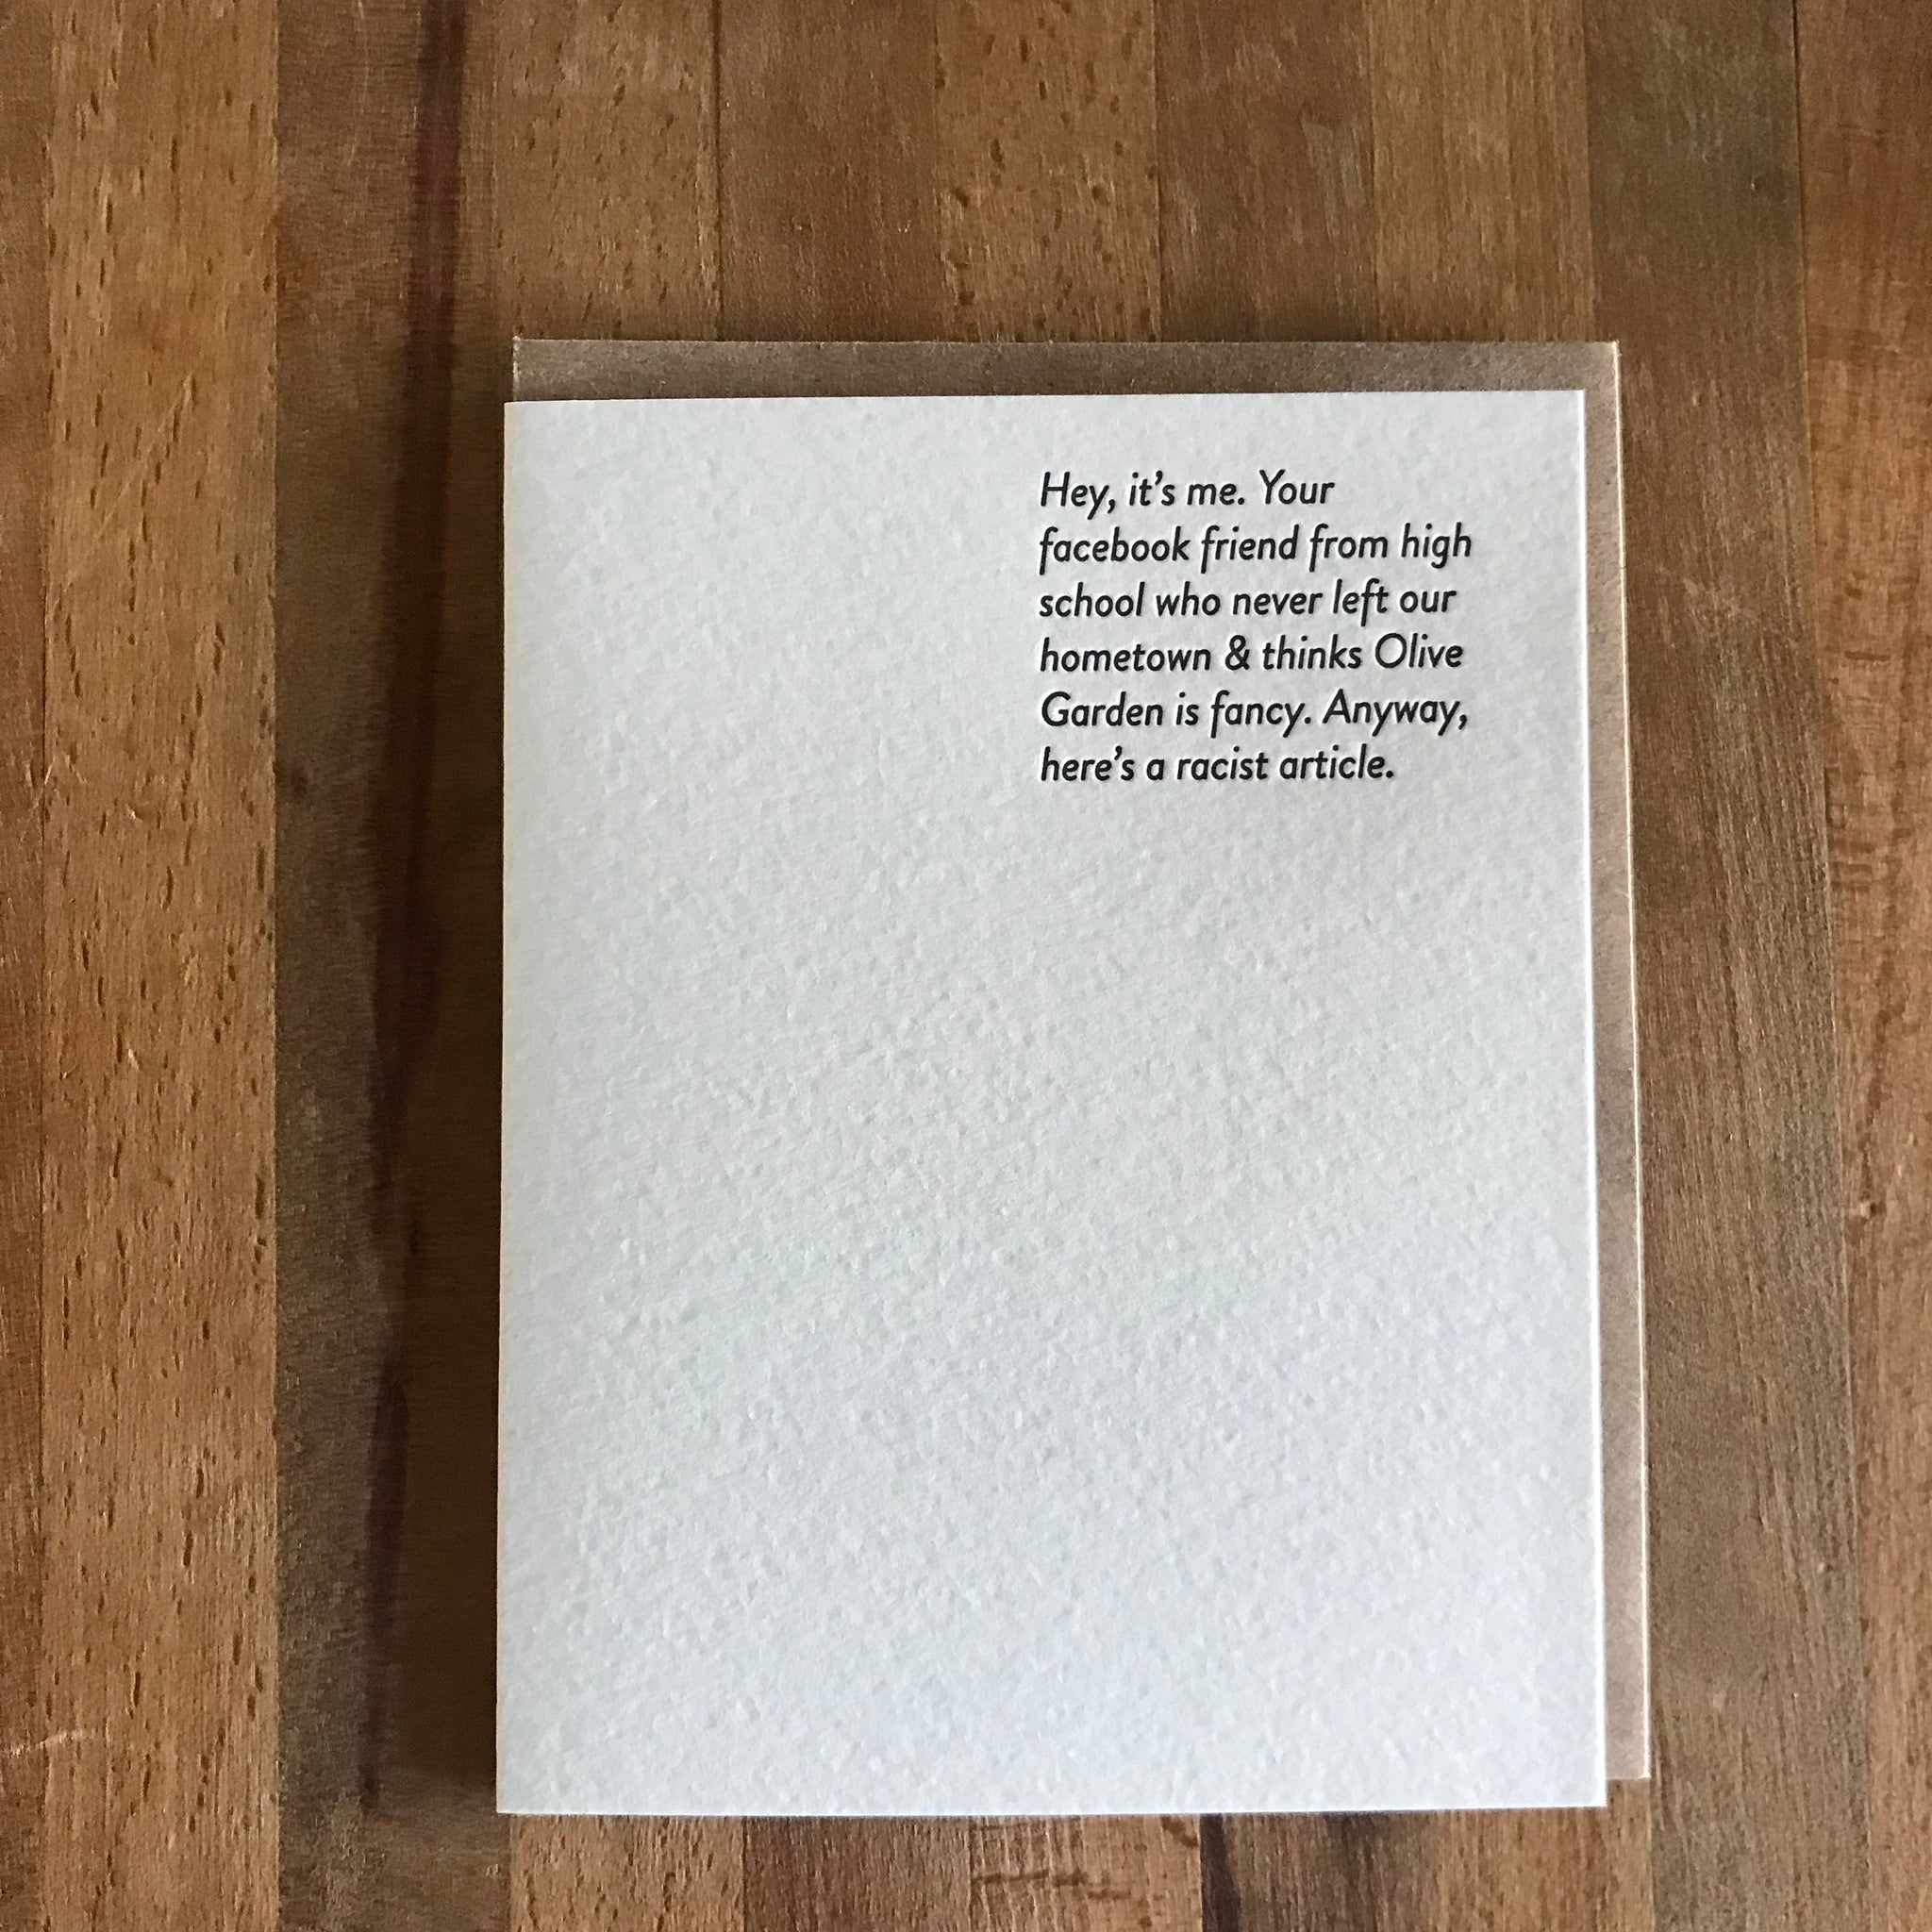 FACEBOOK FRIEND Letterpress Greeting Card by Sapling Press - Upstate MN